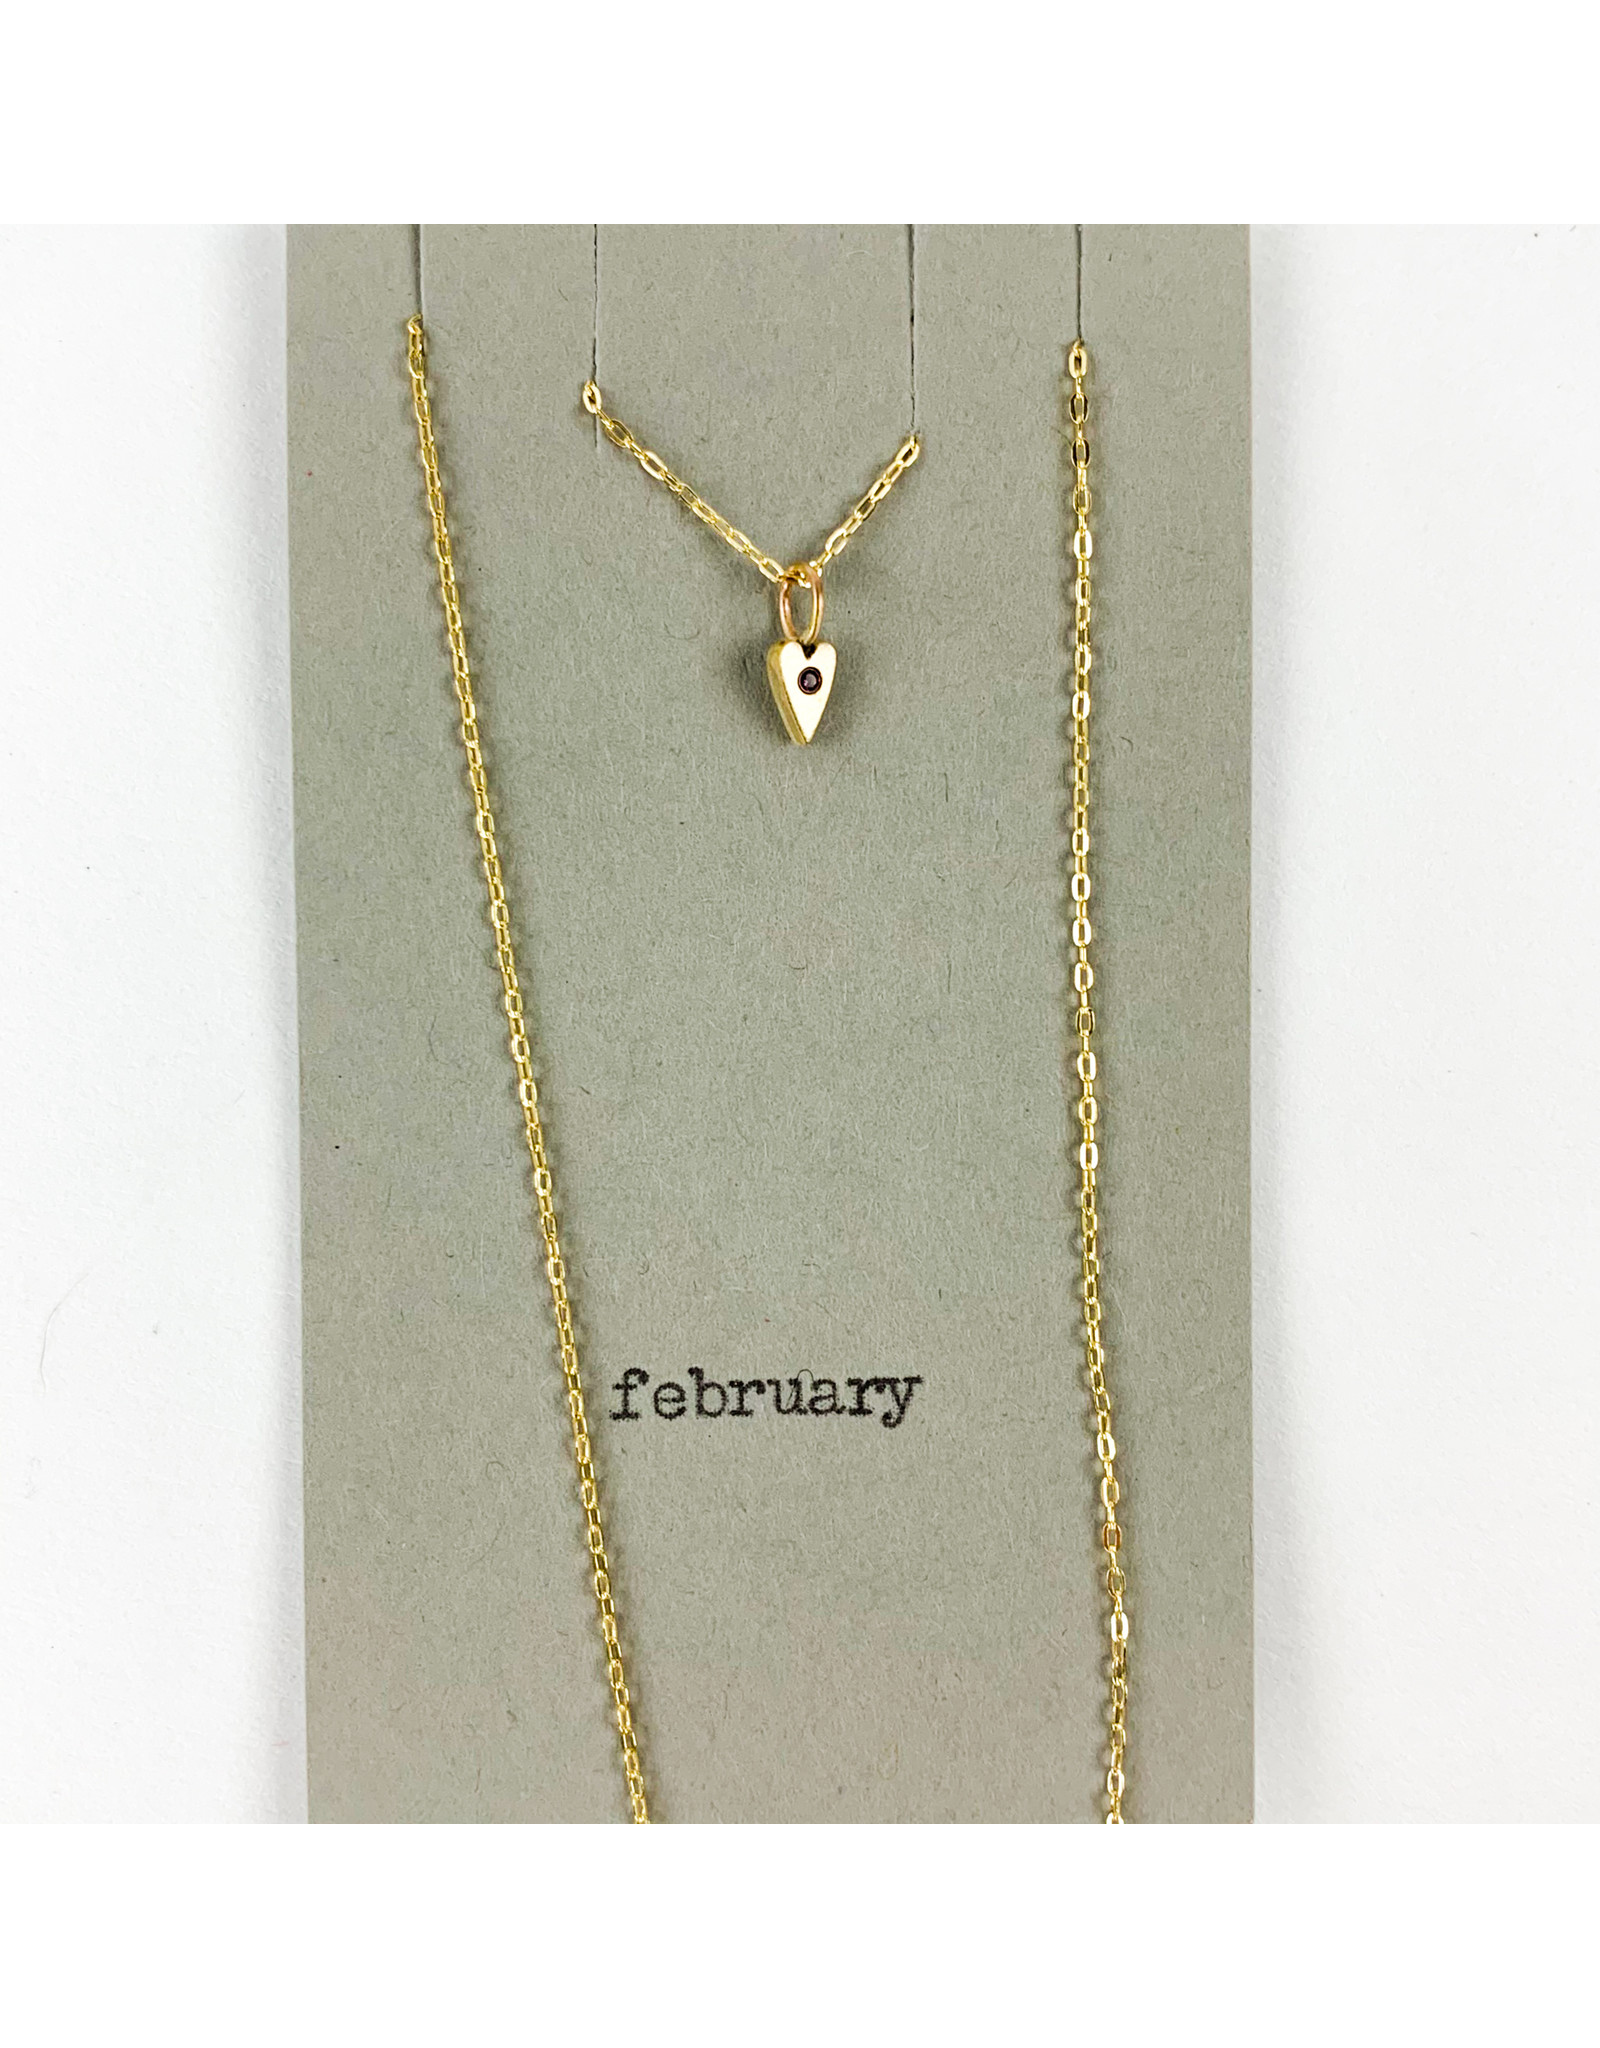 penny larsen February Necklace/ Amethyst Gold Chain